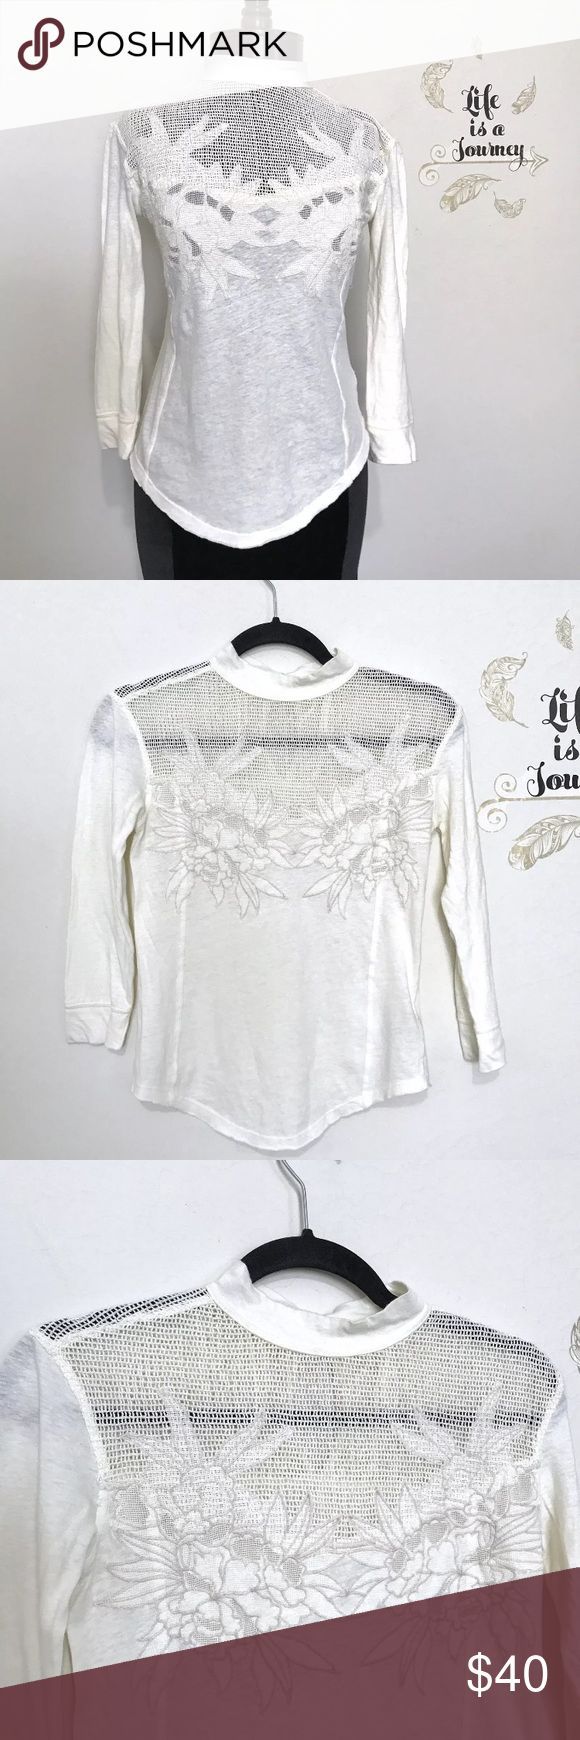 Free People Floral High Neck Cotton Blouse A beautiful off white cotten linen blend blouse with a sheer netting and floral applique bust! Distressed and destroyed hems and a high neck button collar! Excellent condition, small hole at one armpit, as pictured! Pit to pit: 16.5 in Length, shoulder to hem: 19.5 in Sleeve, pit to cuff: 12.5 in Free People Tops Blouses